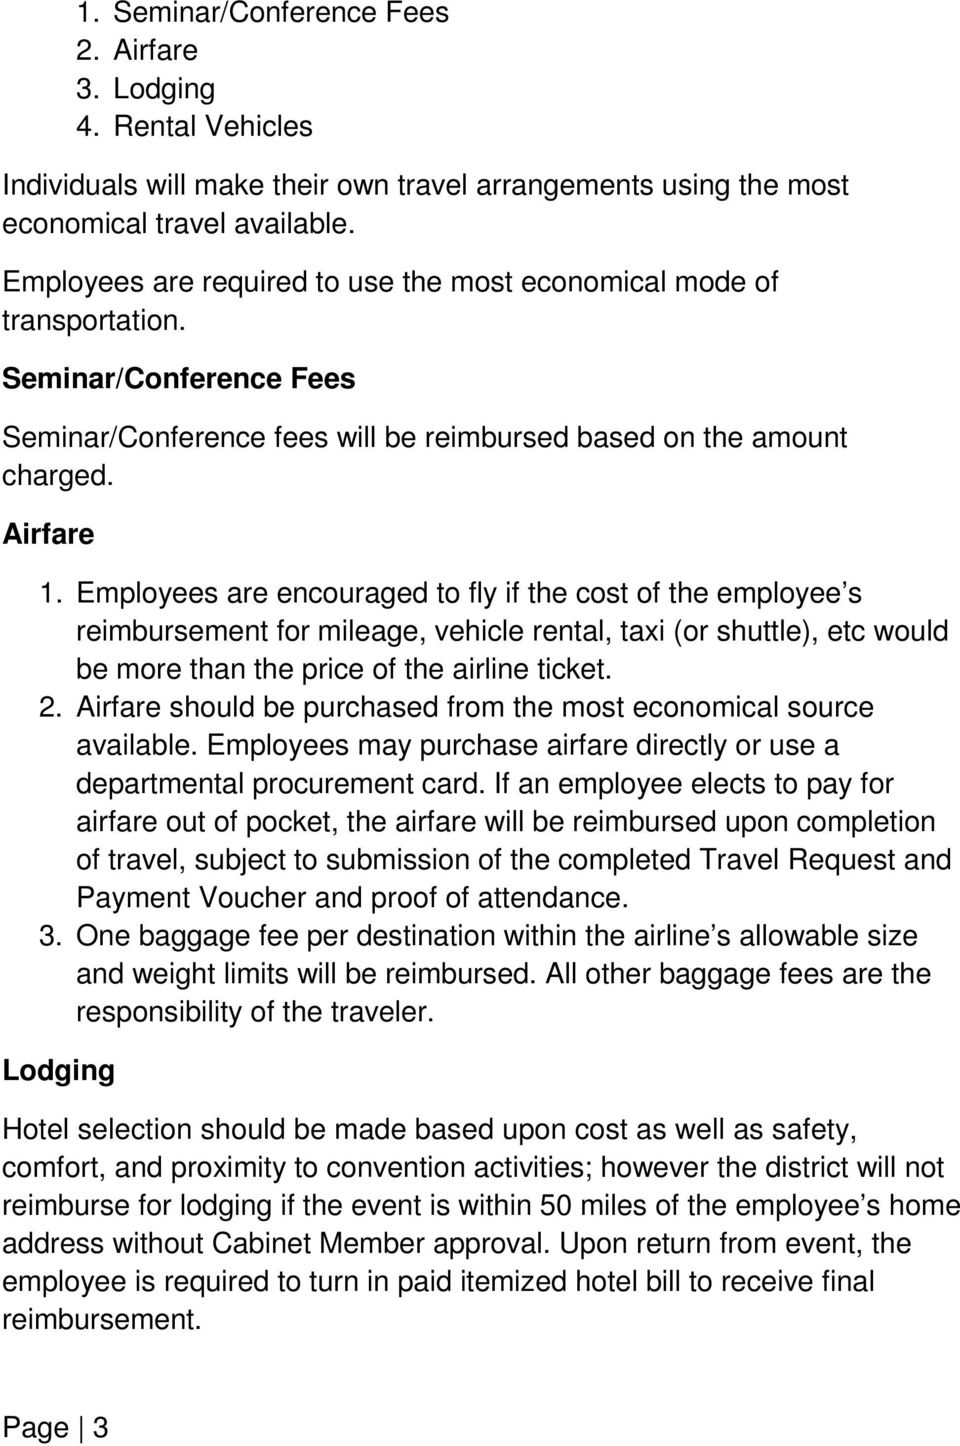 Employees are encouraged to fly if the cost of the employee s reimbursement for mileage, vehicle rental, taxi (or shuttle), etc would be more than the price of the airline ticket. 2.